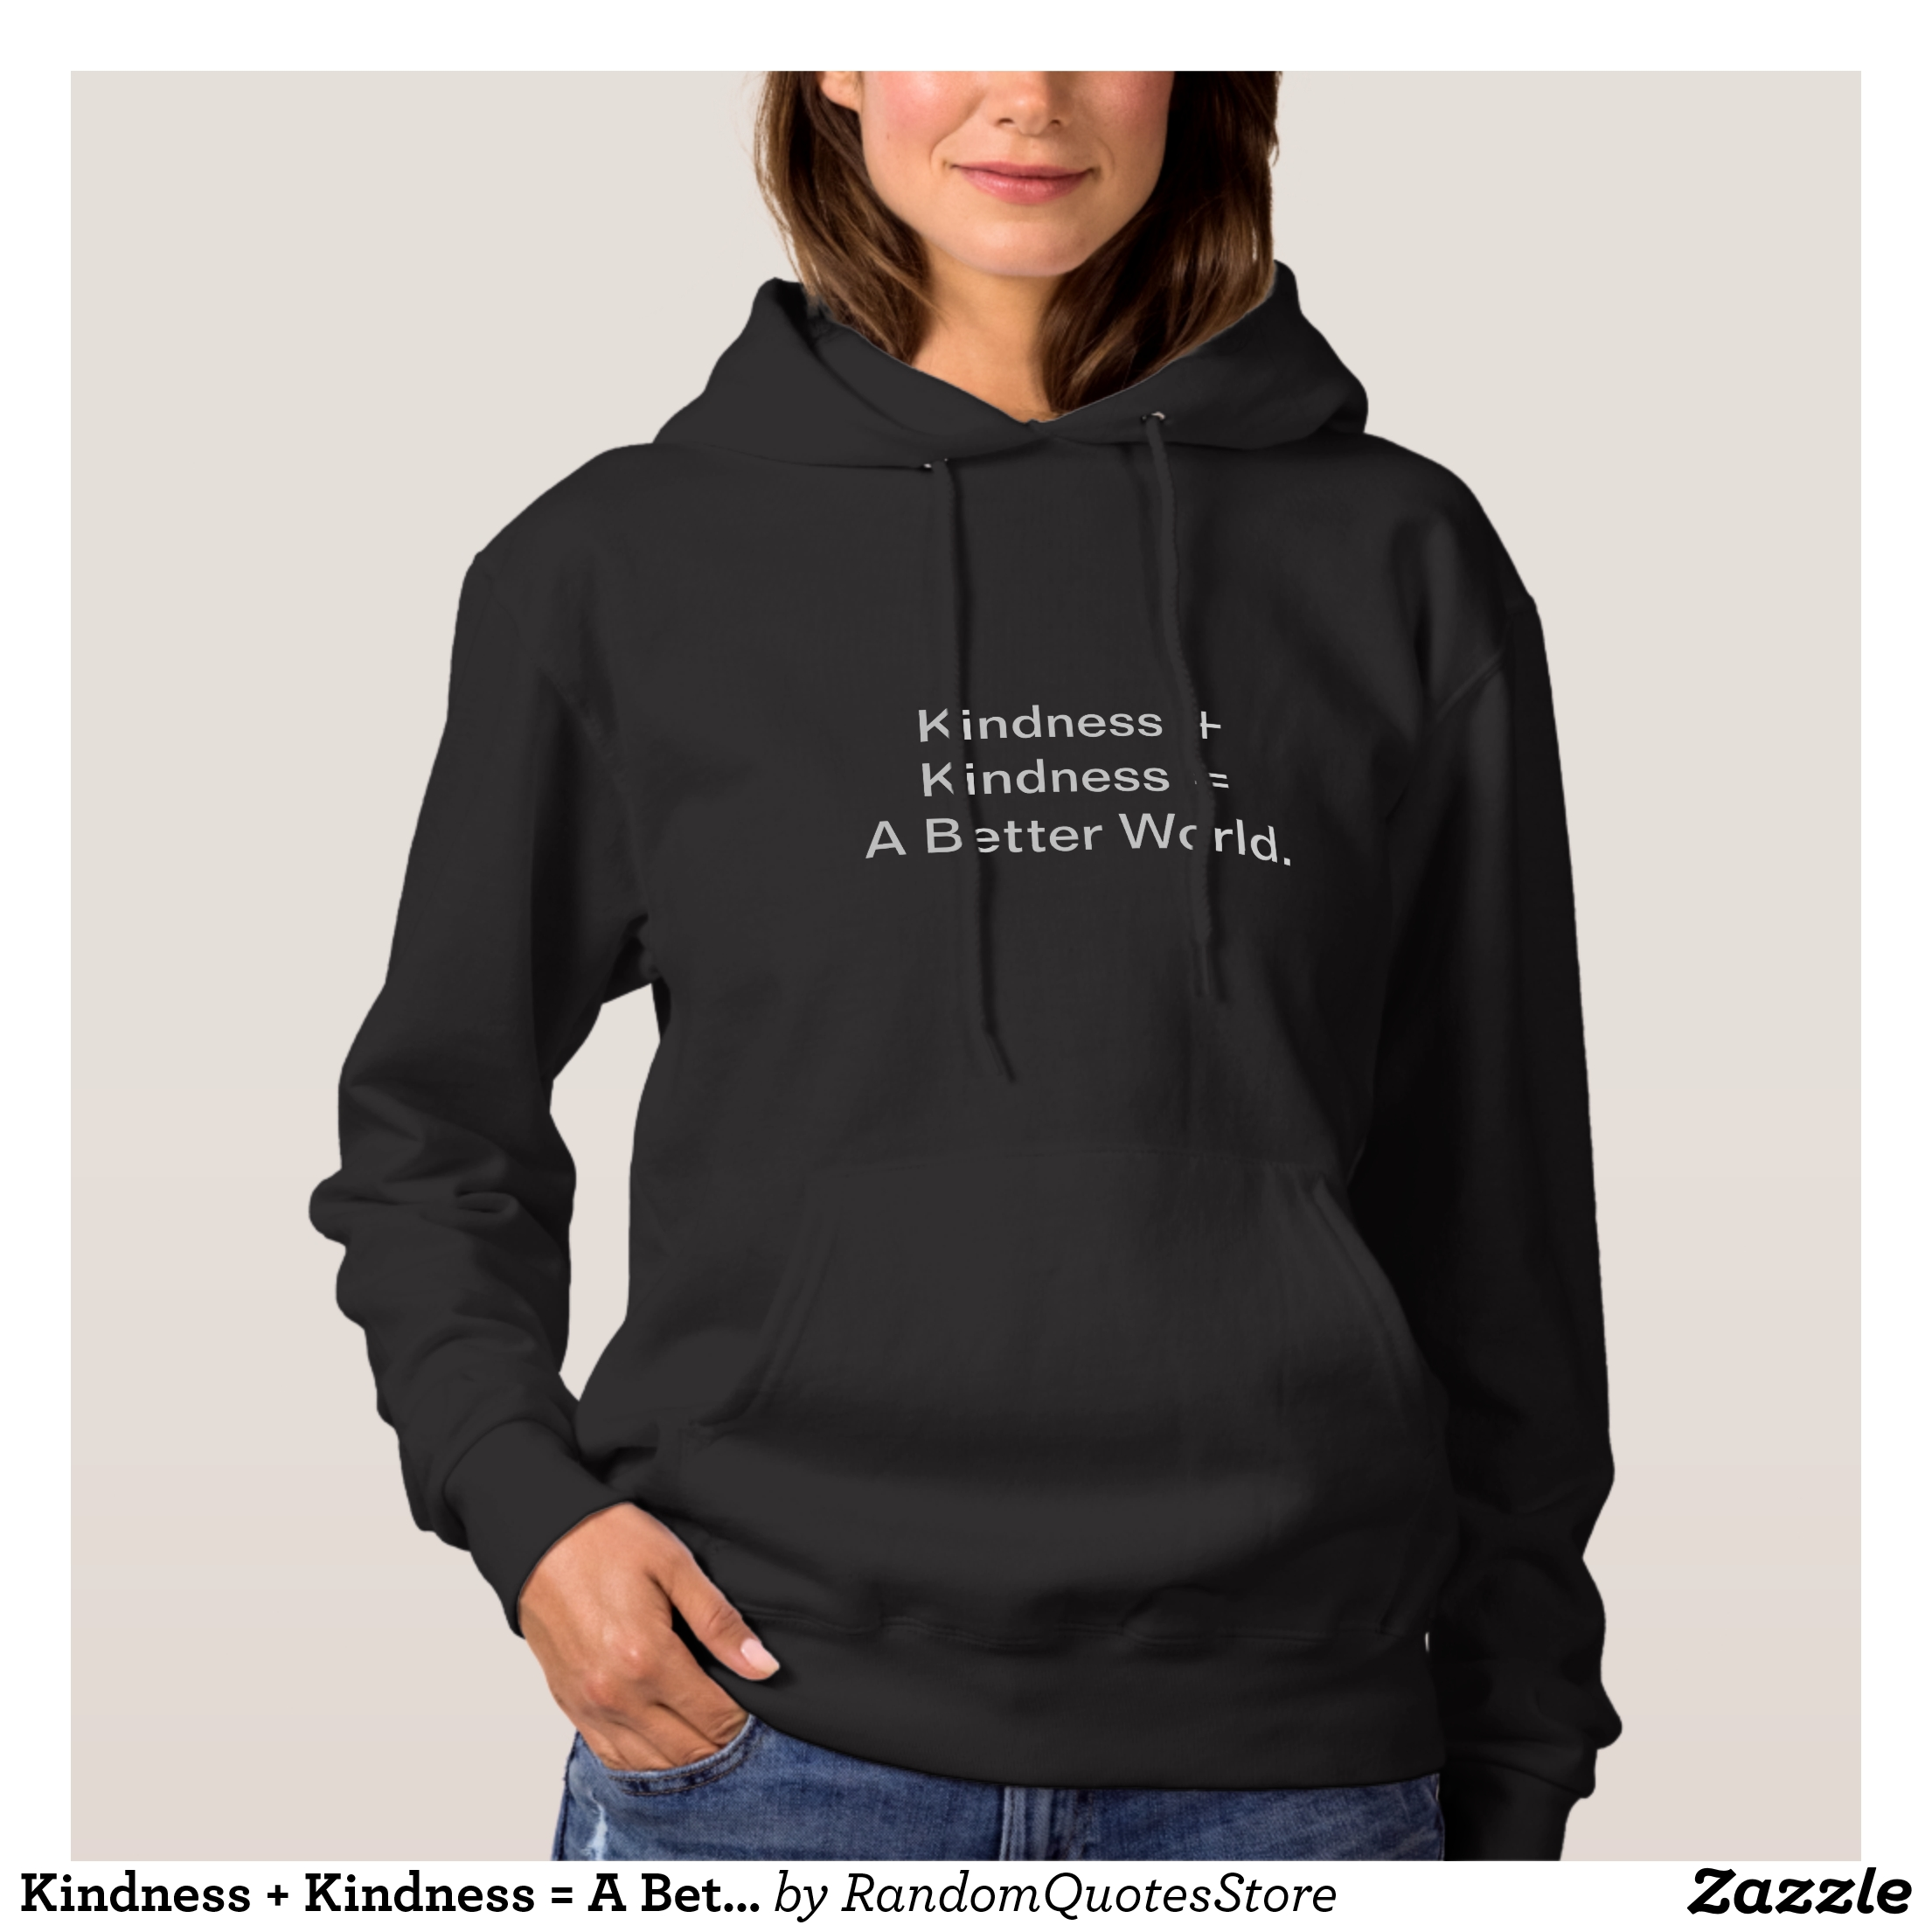 warm womens outdoor hoodies creative fashion designs bargain gift ideas and luxury shopping inspiration hoodie - Hoodie Design Ideas